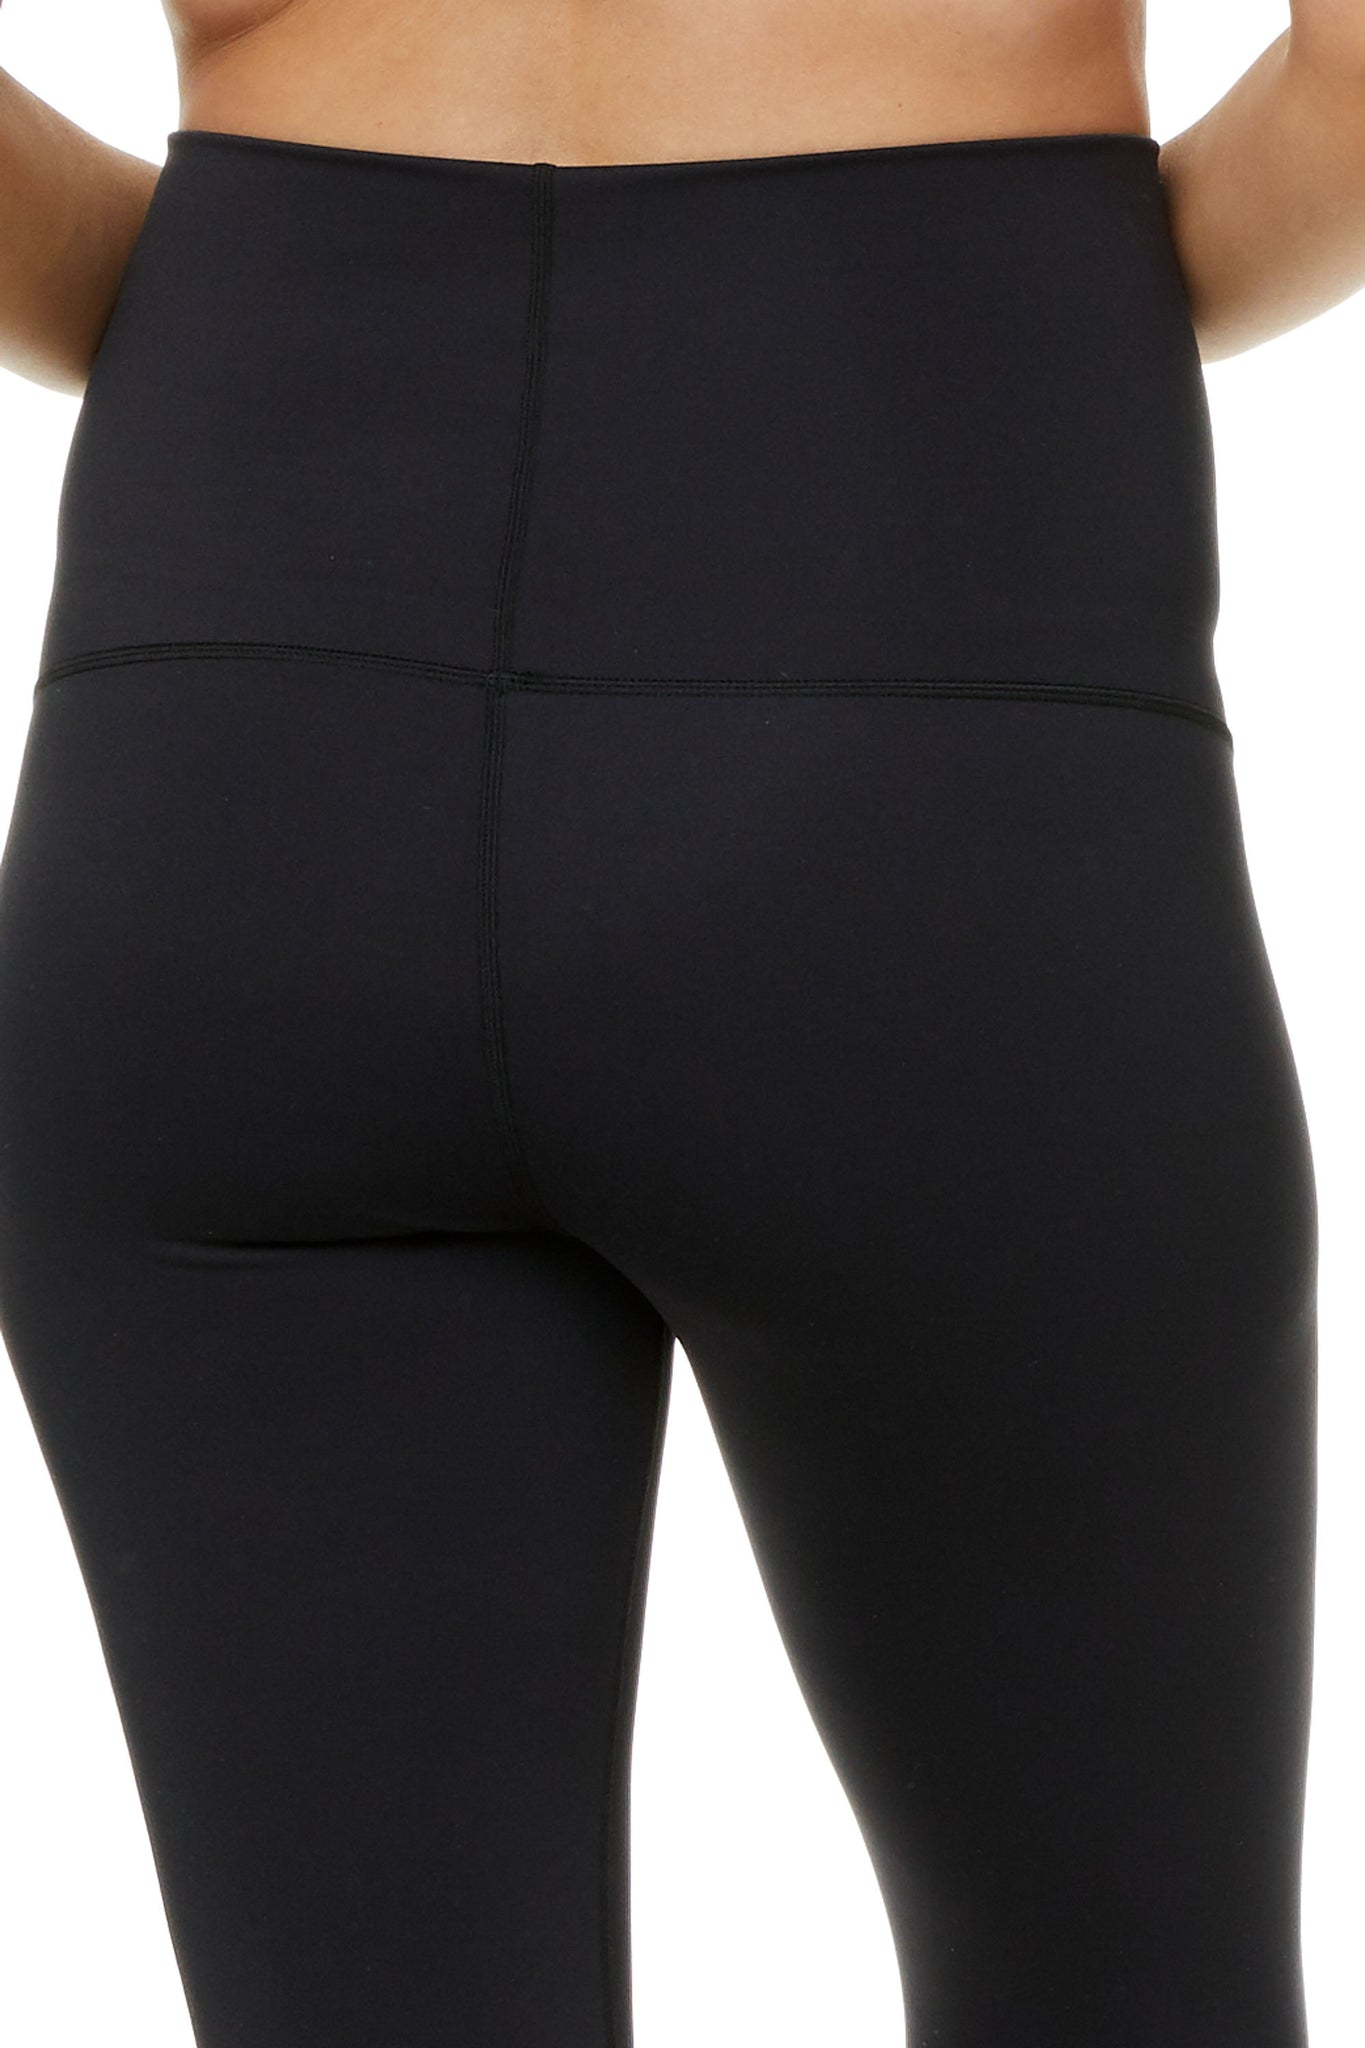 Maternity Leggings - Black 8